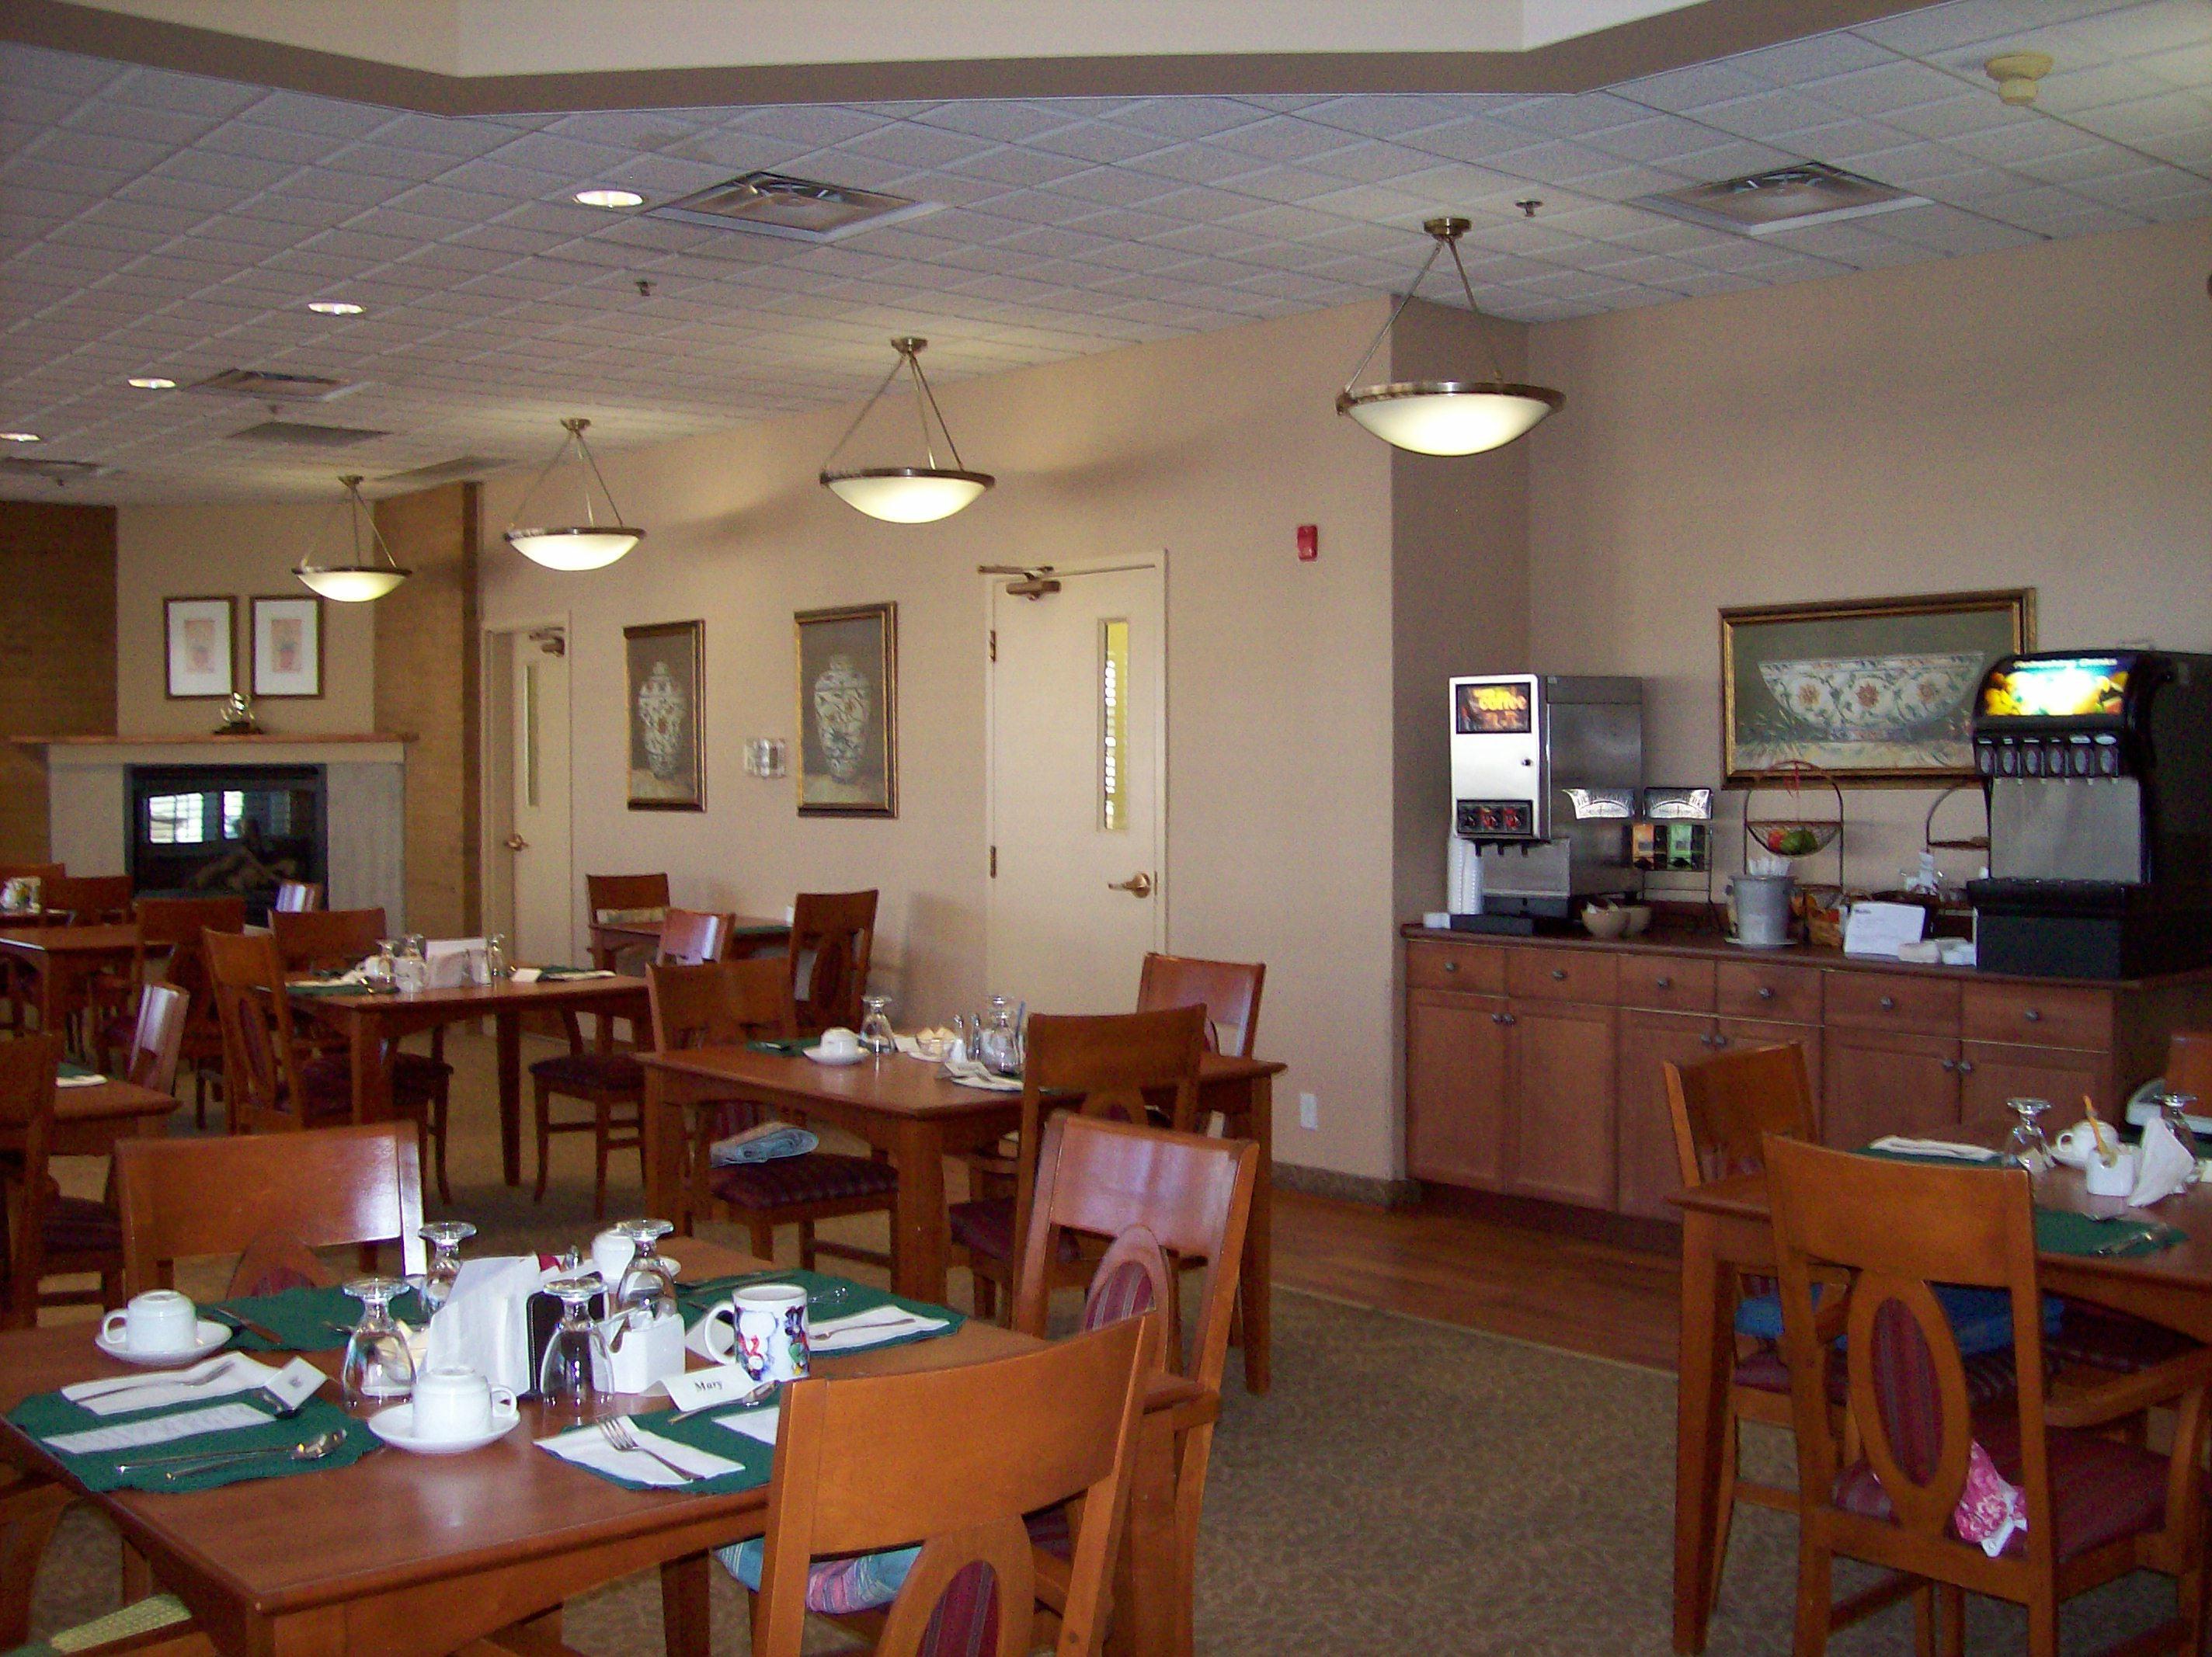 24-Hour Buffet Area